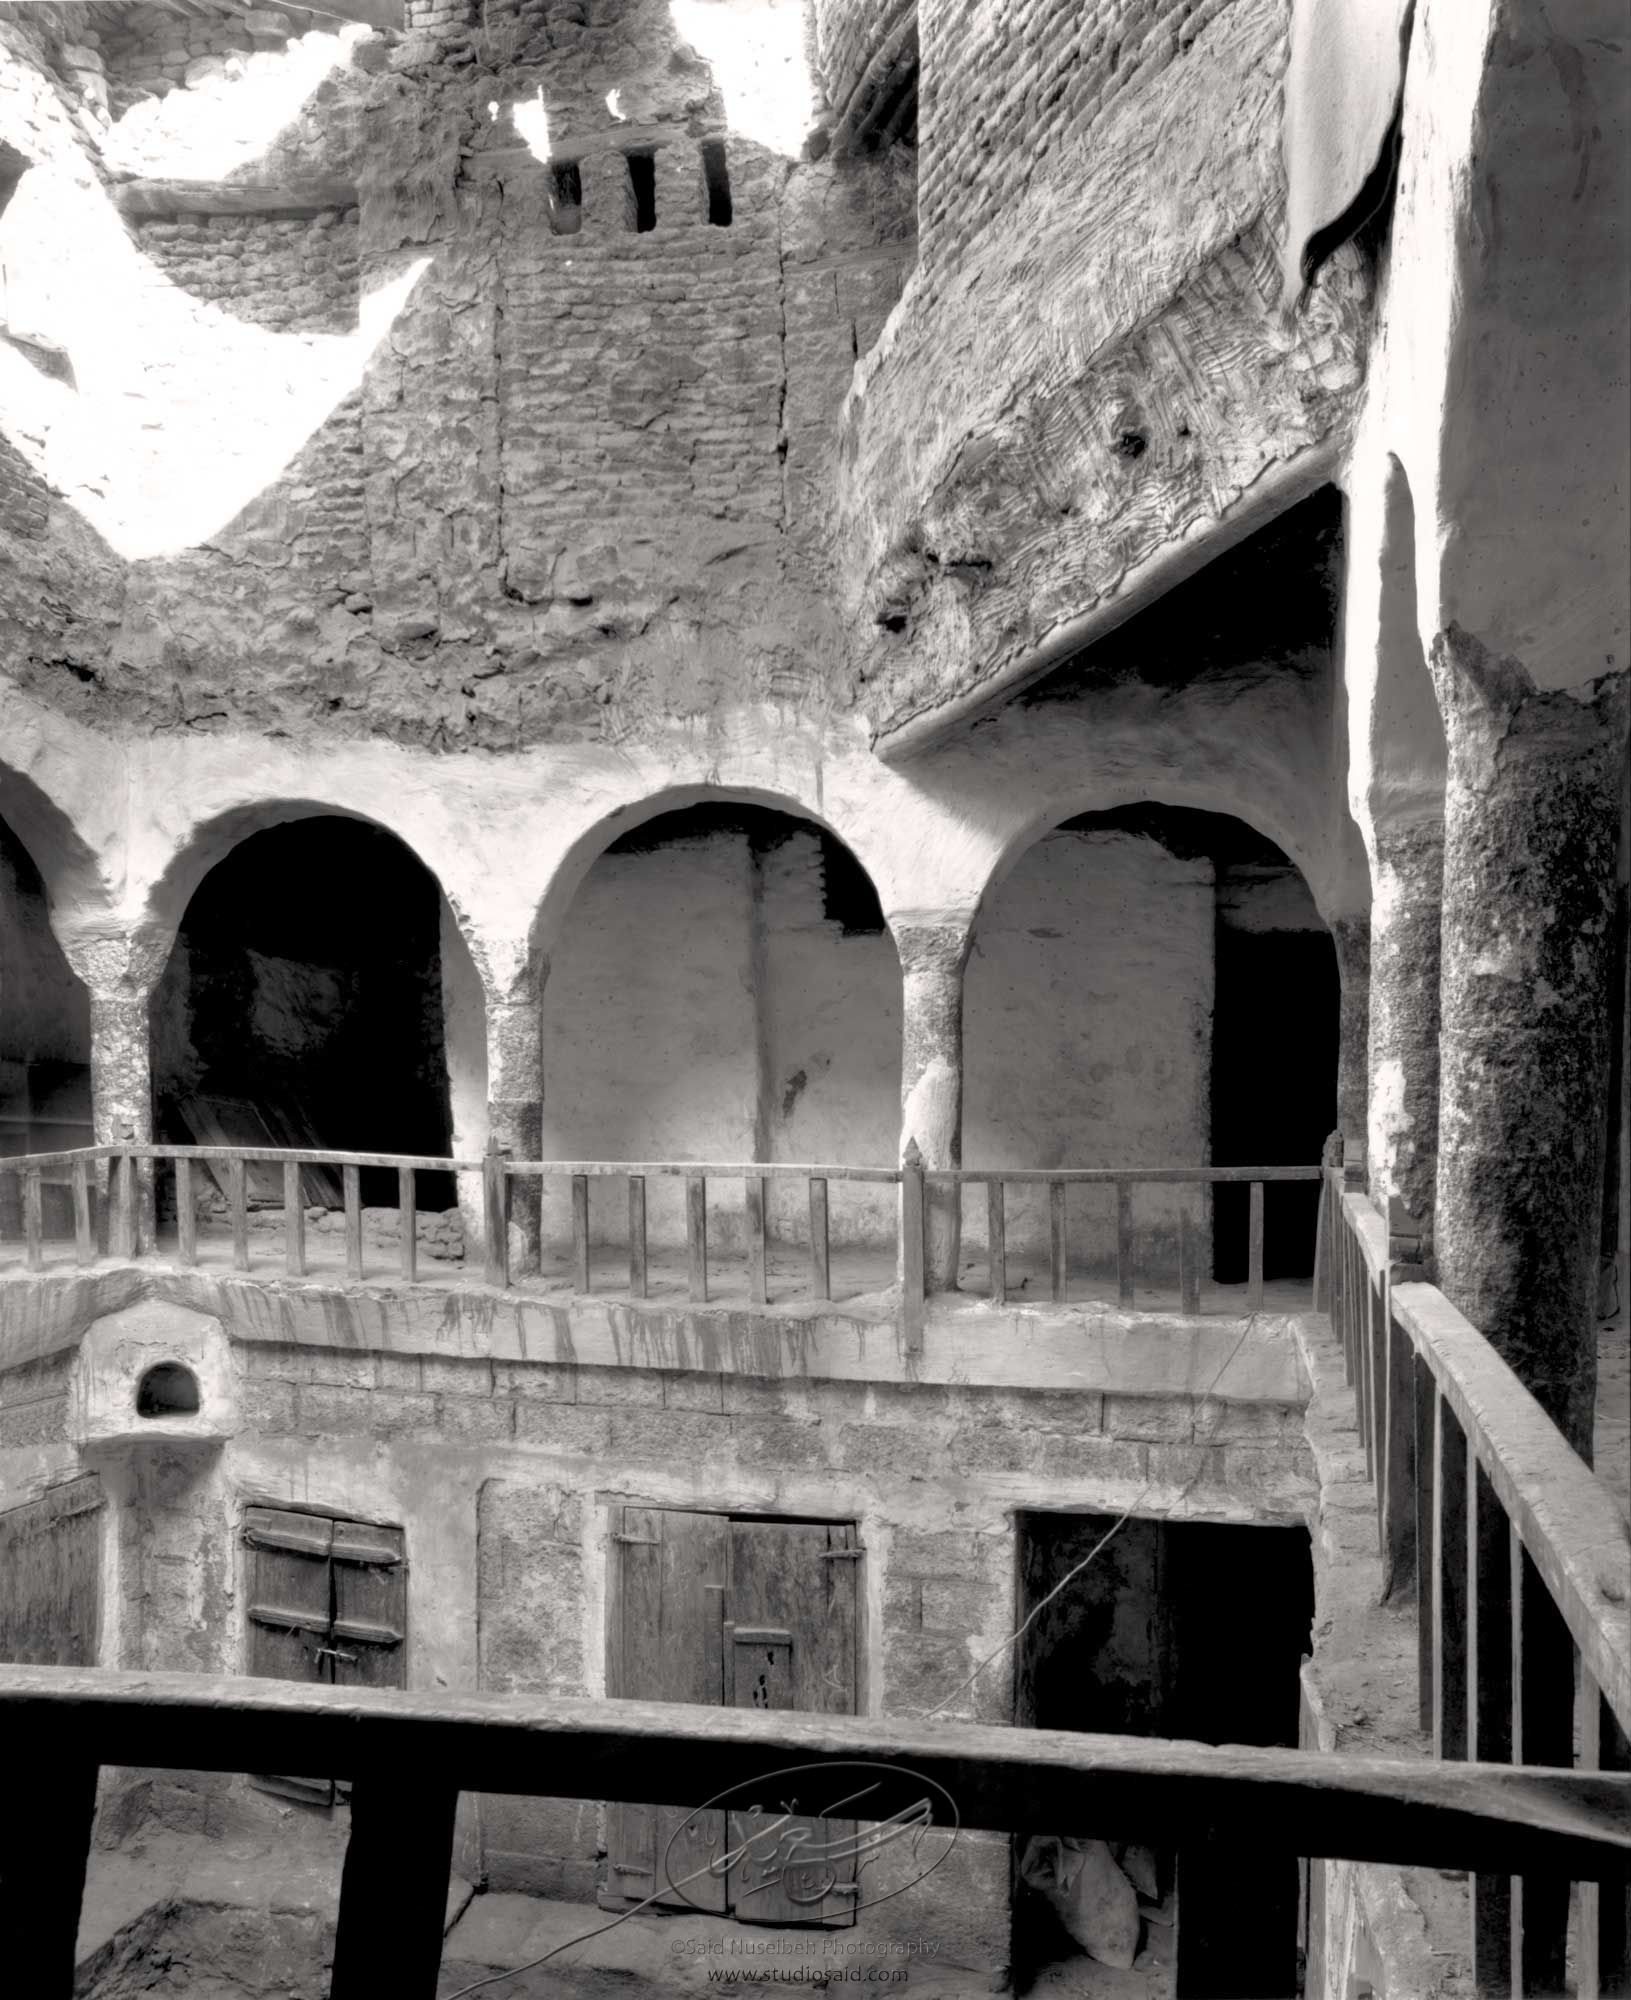 Caravansery from 2nd floor balcony, the lodging for itinerant traders. Old City Sana'a